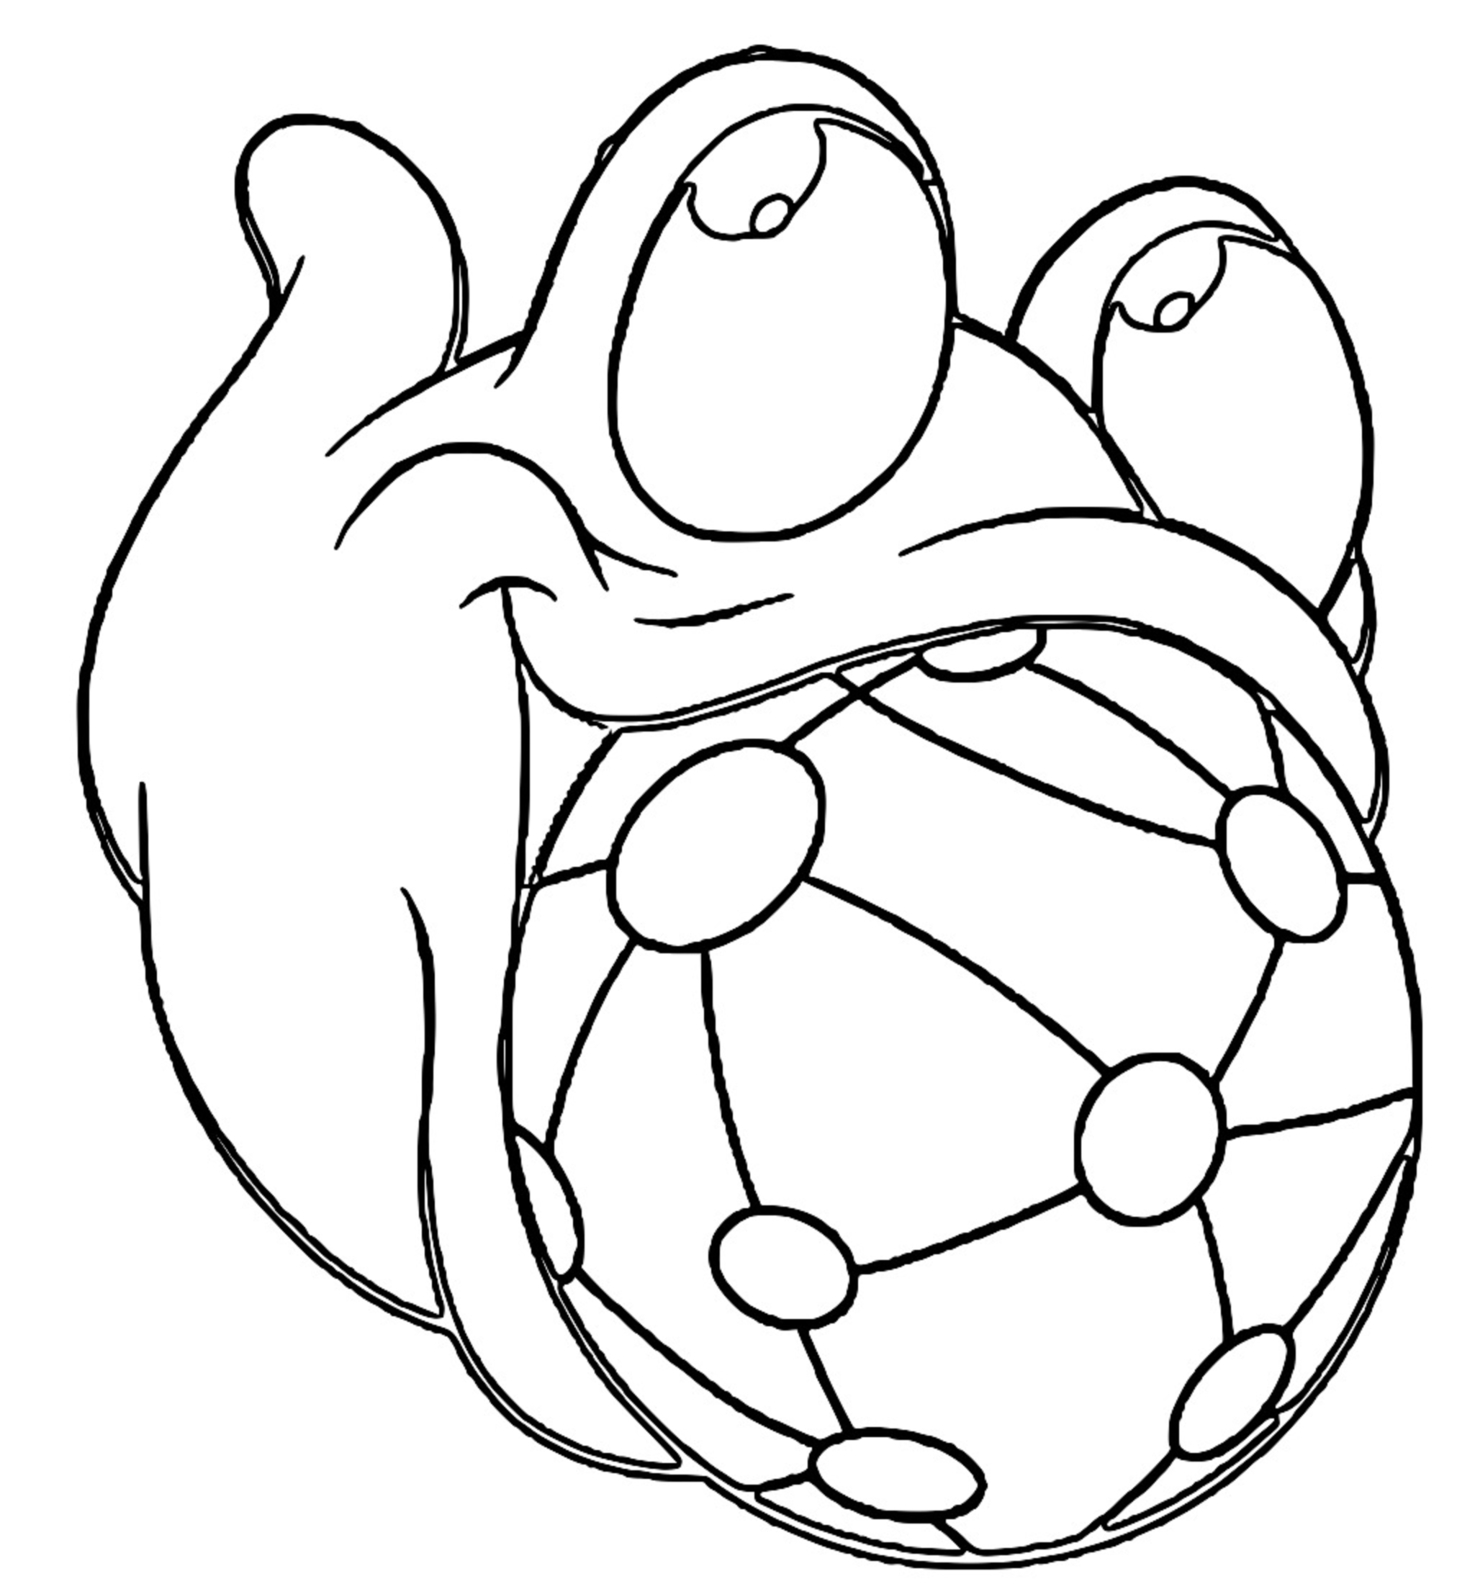 Treasure Planet jim 7 Coloring Pages_Cartoonized